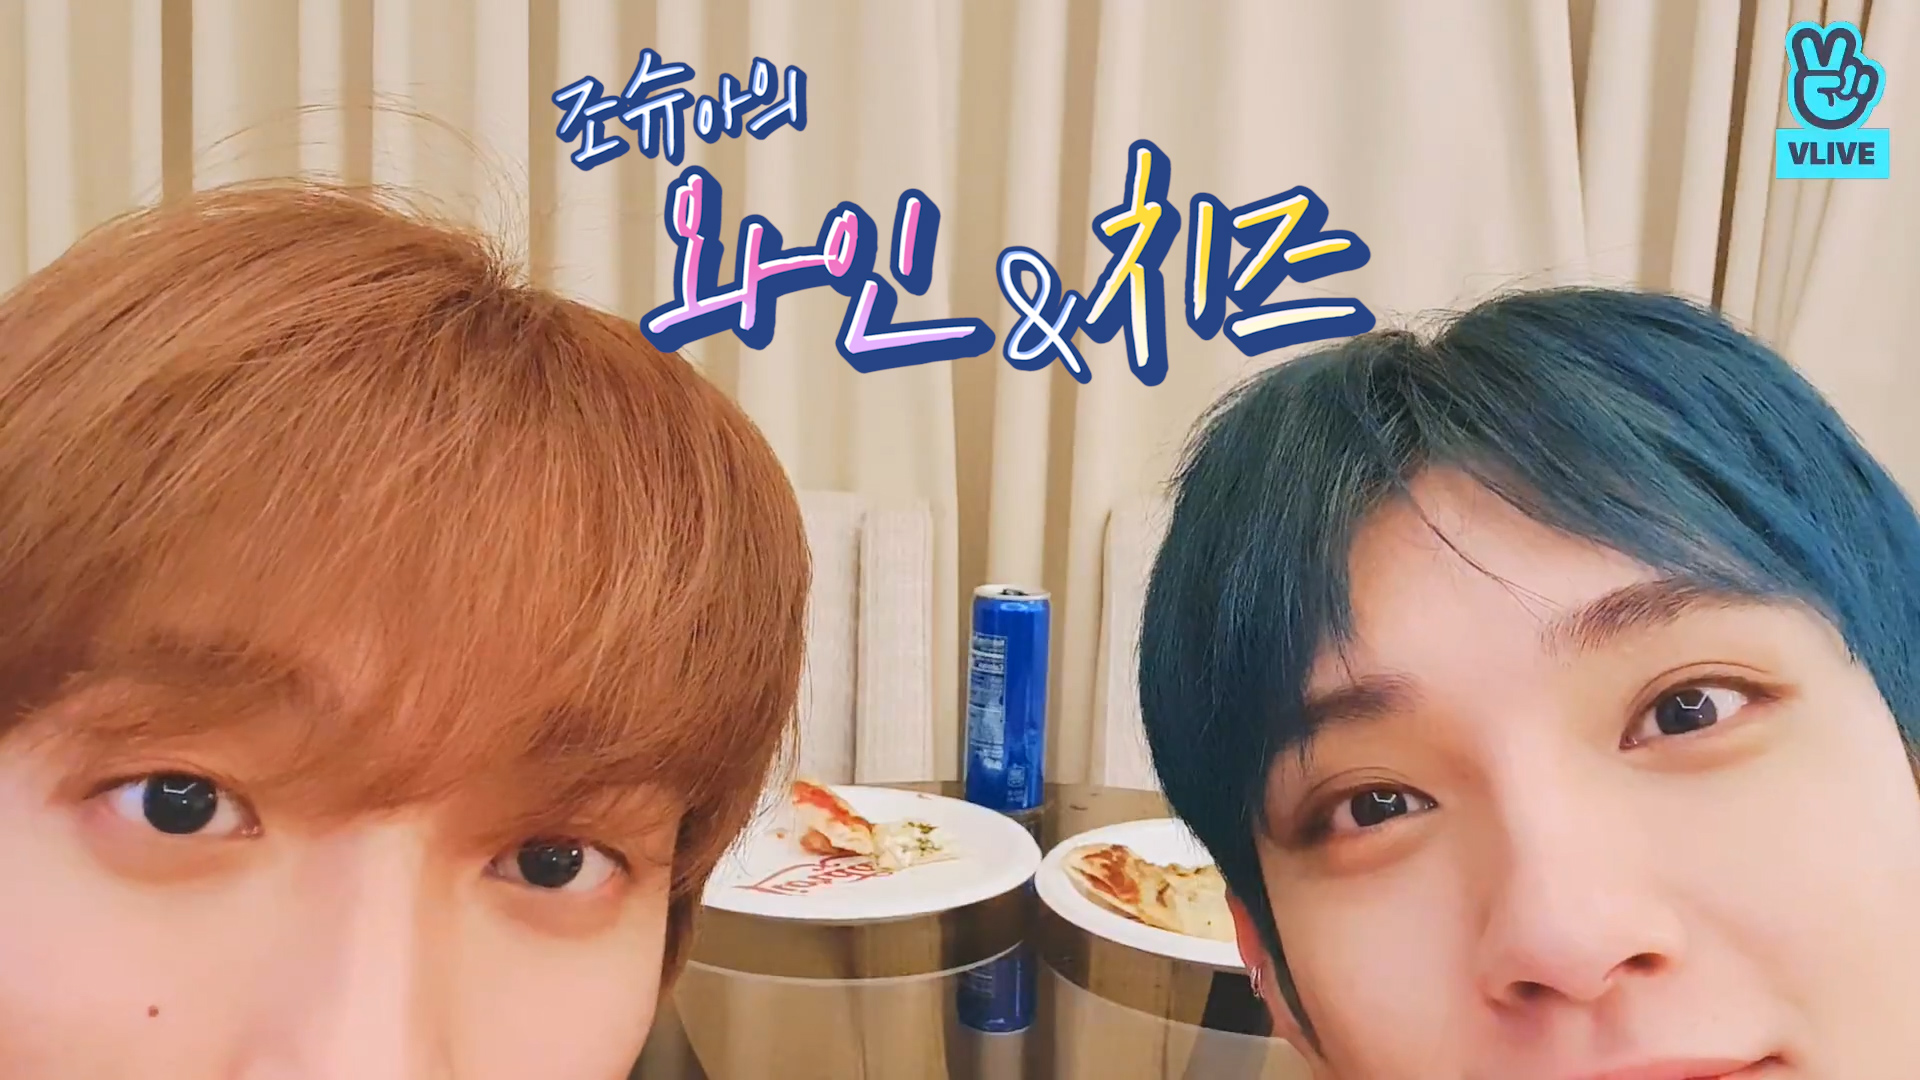 [SEVENTEEN] 와인앤치즈라고 쓰고 미술시간이라고 읽습니다🎨 (JOSHUA&DK talking about mixing color)